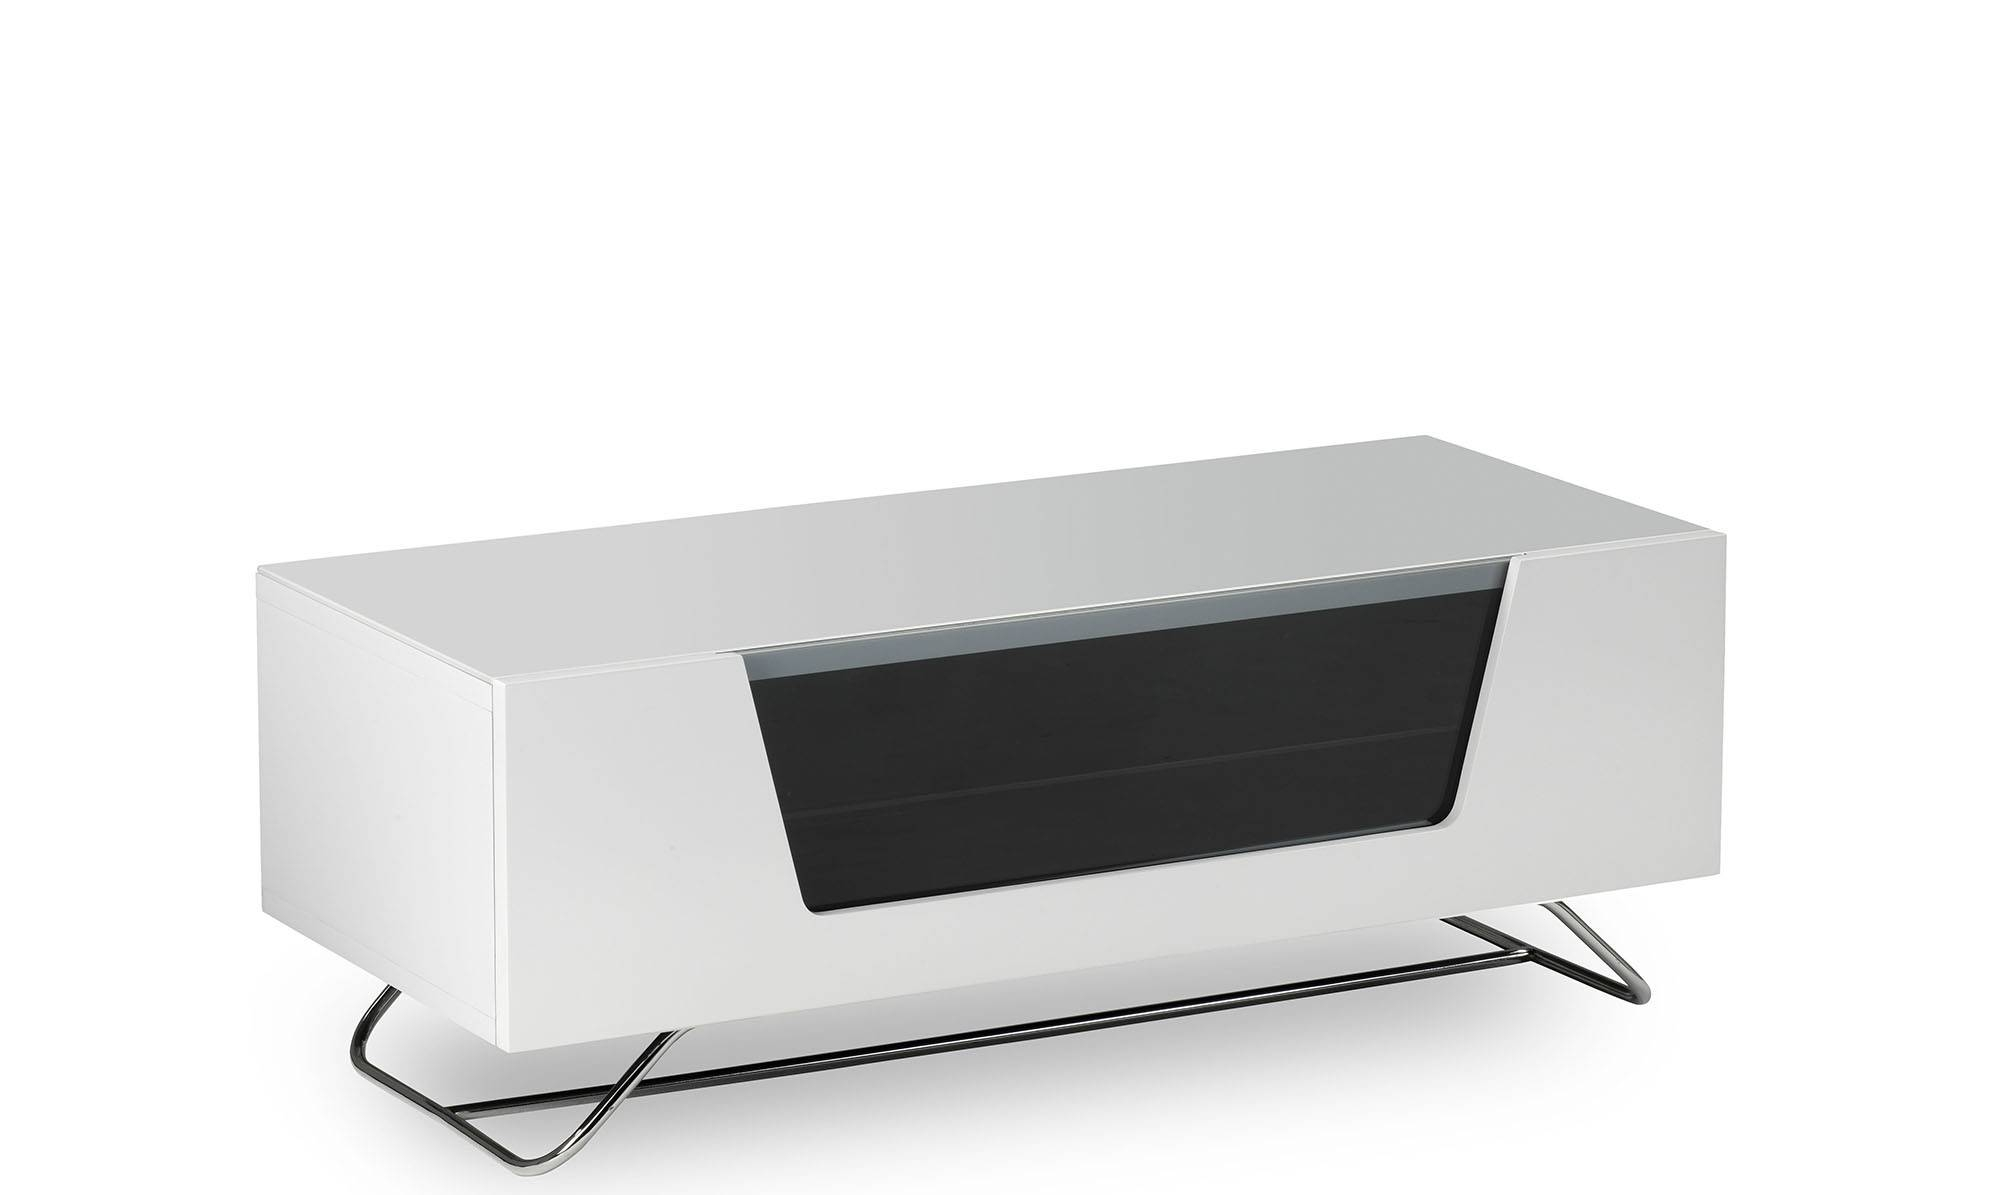 Omega - White High Gloss Tv Unit - Fishpools intended for White Gloss Tv Cabinets (Image 11 of 15)